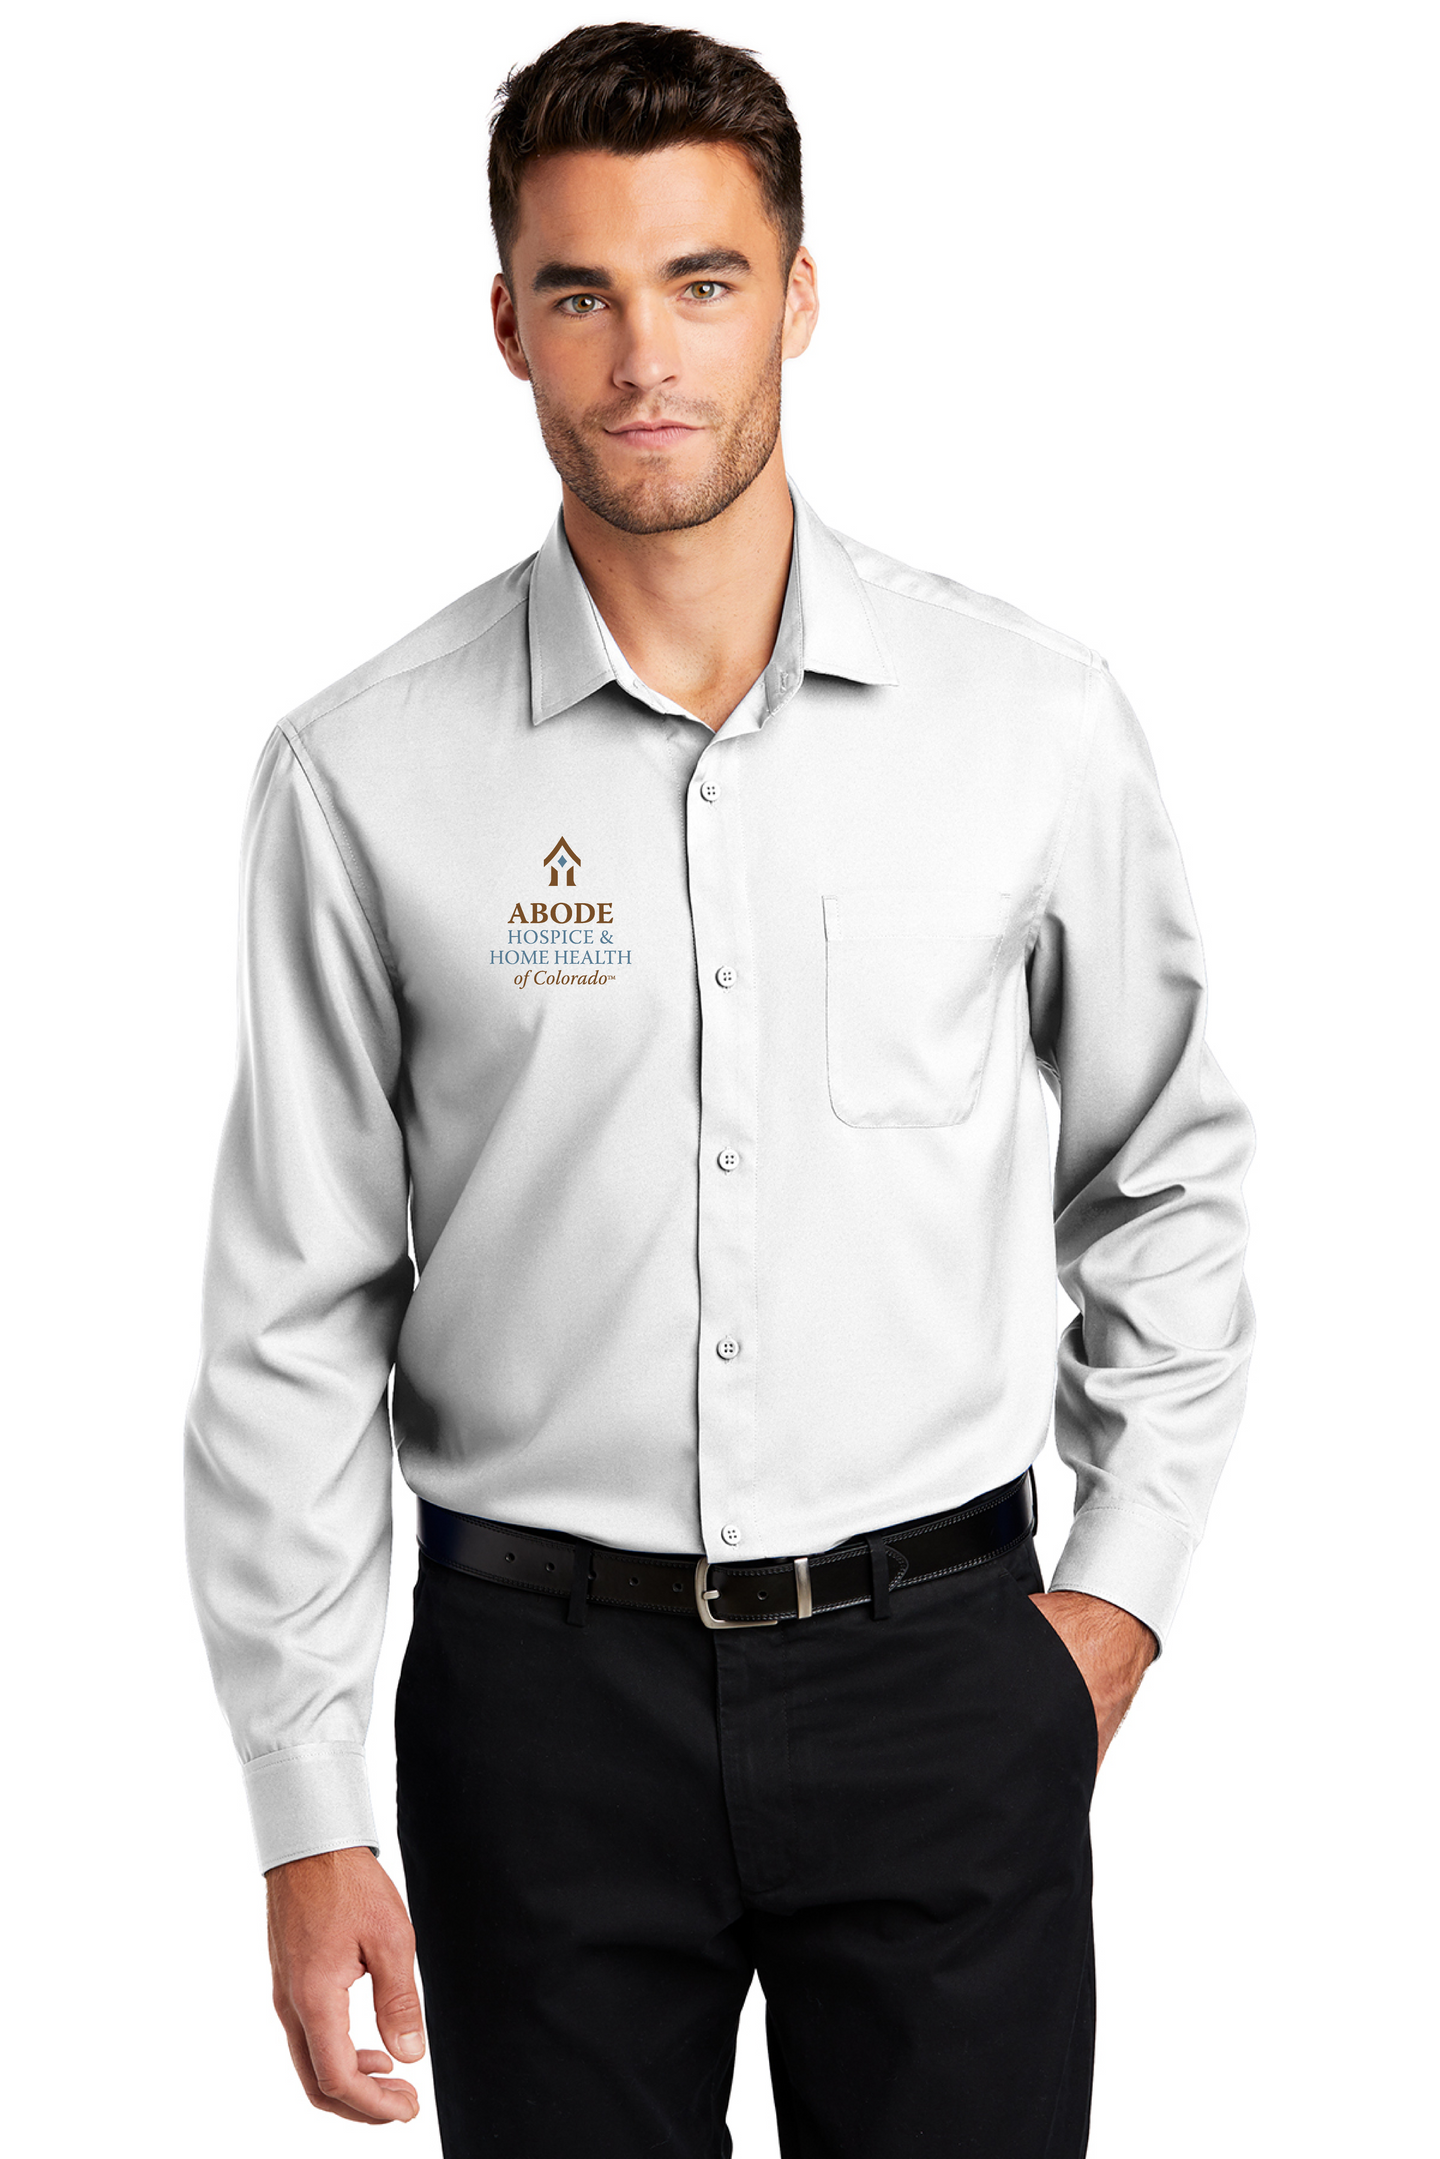 Abode Colorado-Port Authority ® Long Sleeve Performance Staff Shirt W401